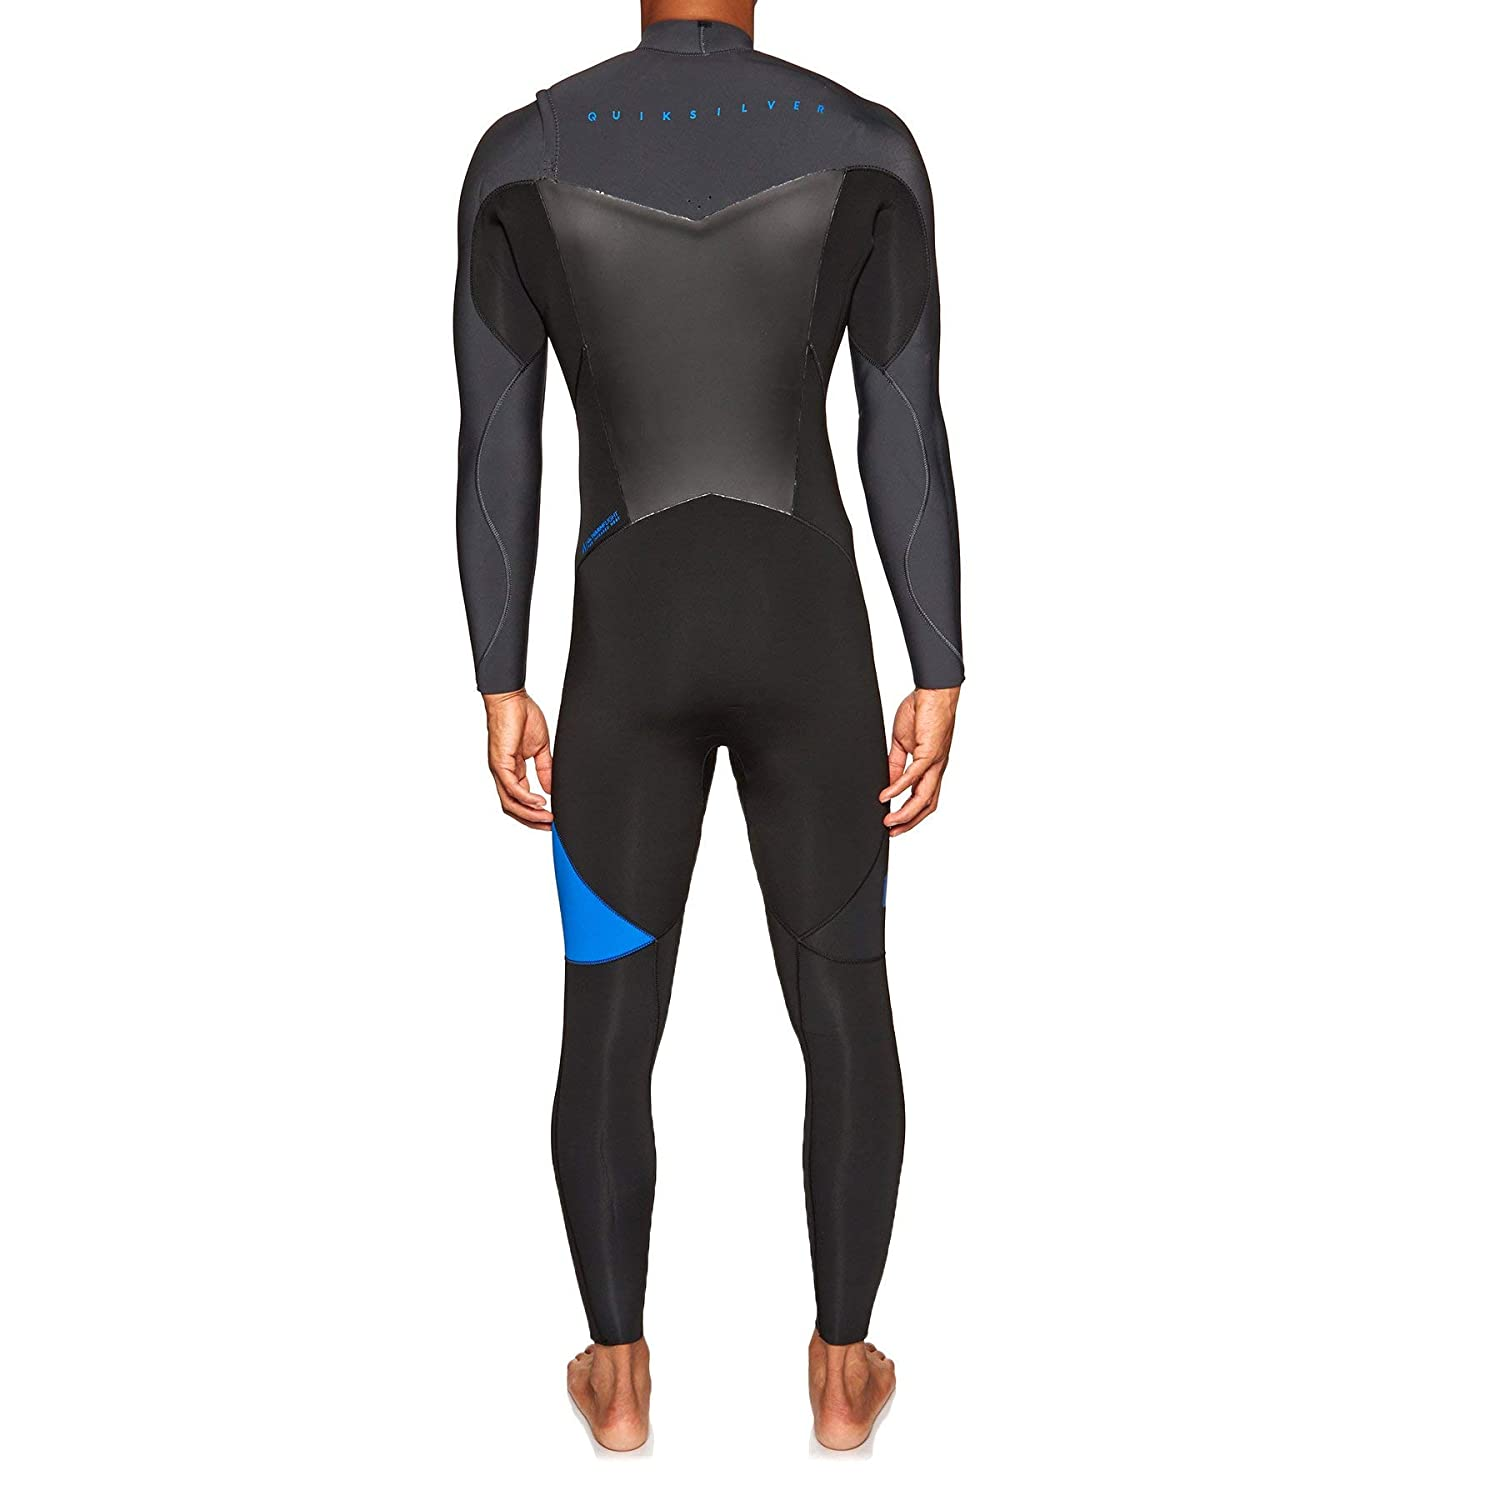 Quiksilver Syncro 5/4/3mm Chest Zip Wetsuit Graphite Black Deep Cyanine - Thermal Warm Heat Layer Layers Easy Stretch